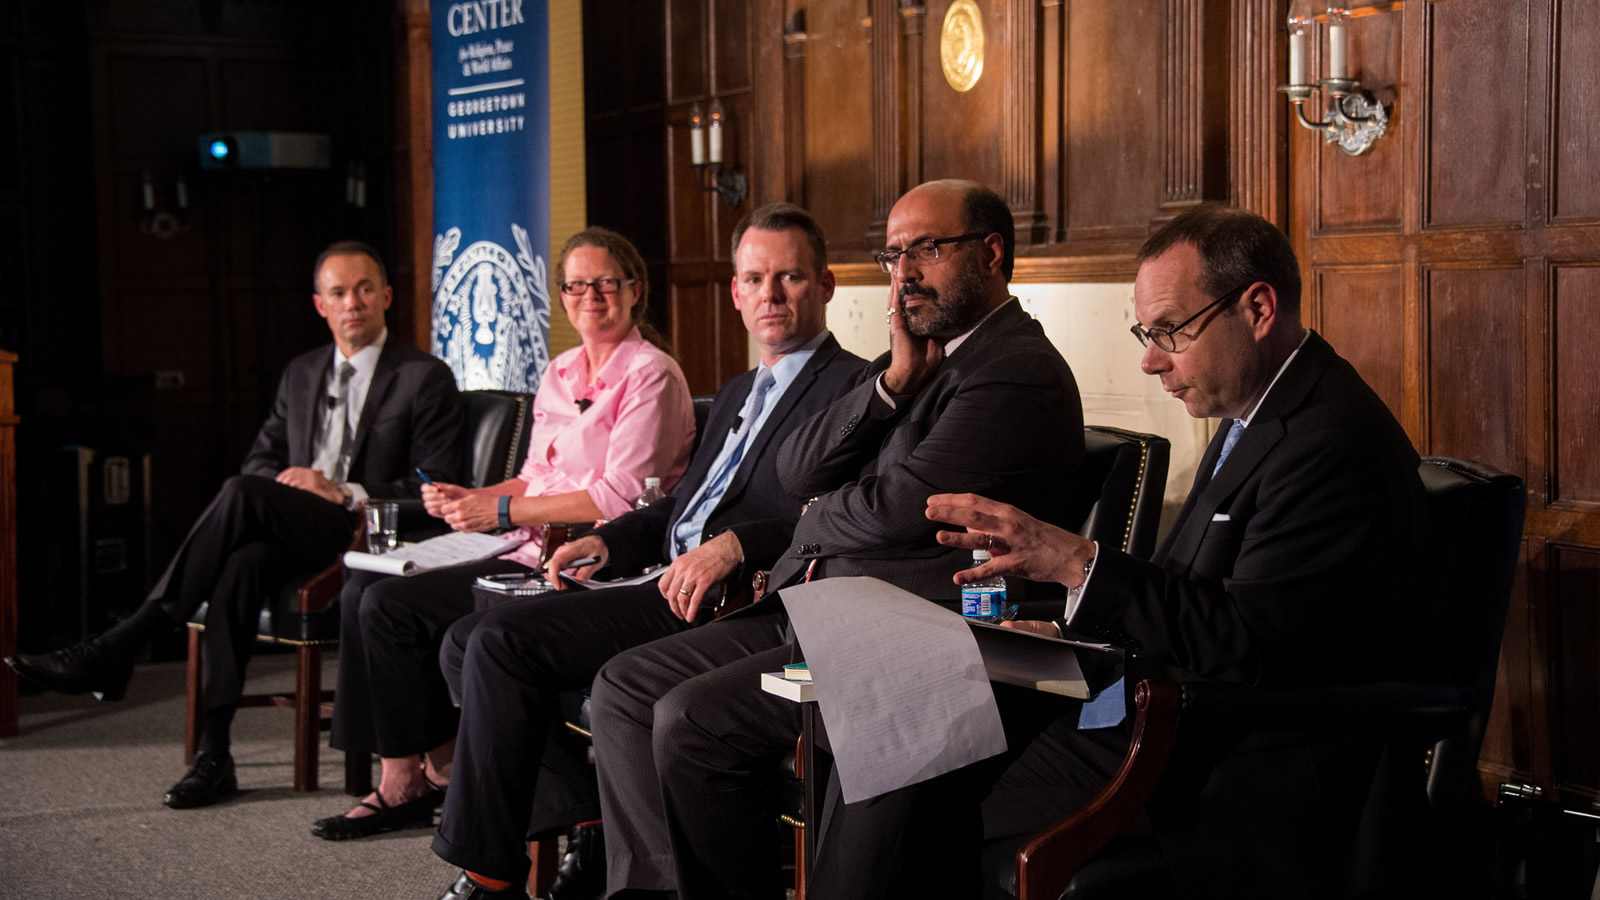 Panelists consider ways to counter global religious violence.